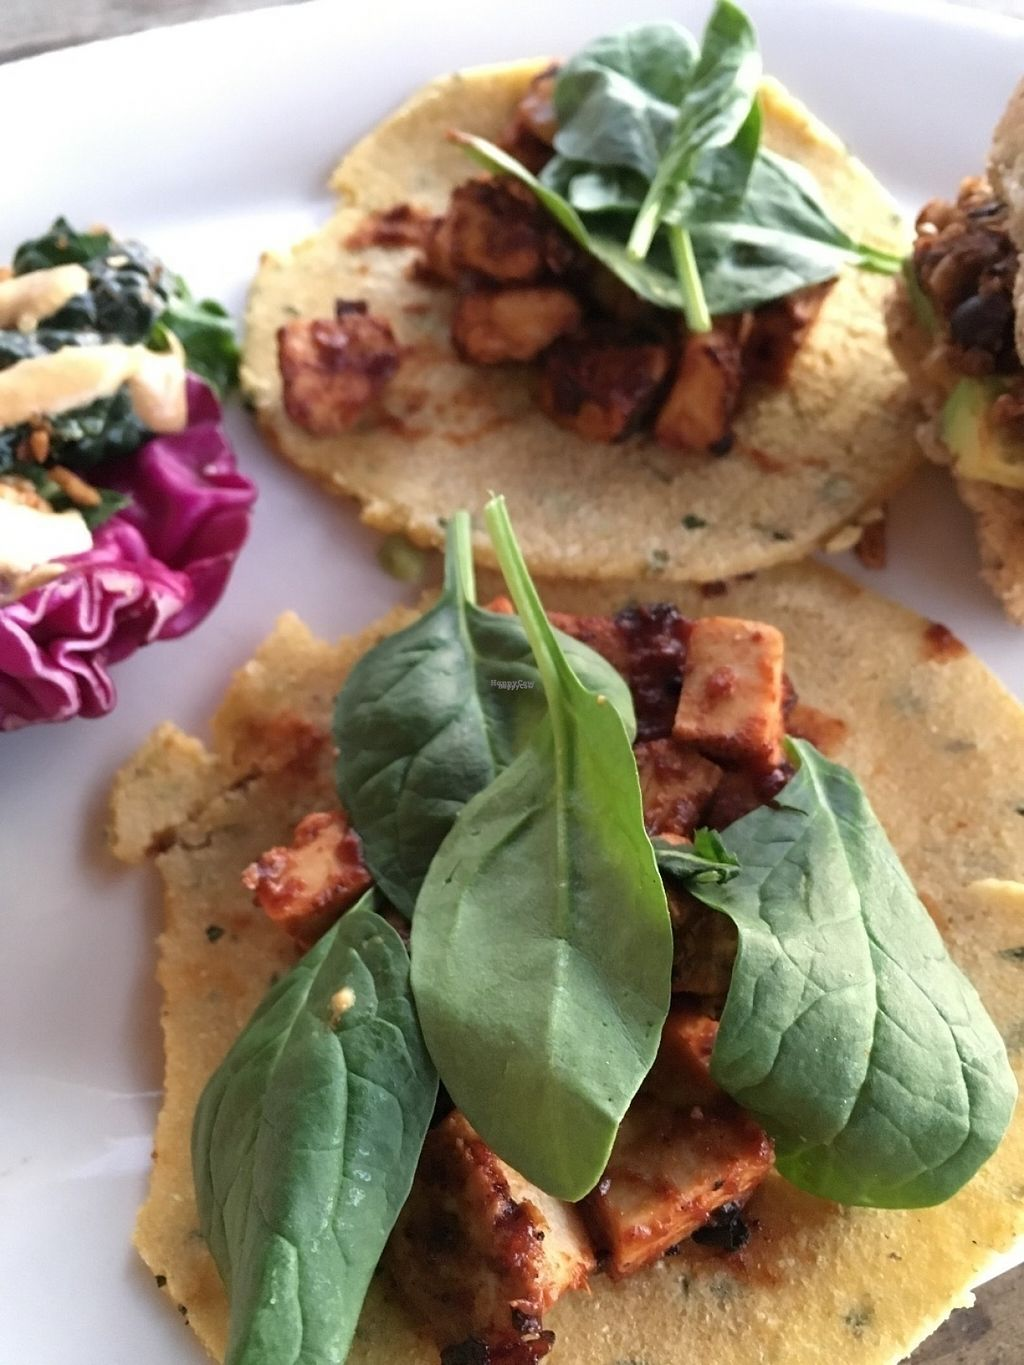 """Photo of Pomegranate Cafe - Chandler Blvd  by <a href=""""/members/profile/Tigra220"""">Tigra220</a> <br/>Happy Hour street tacos (Fall/Winter 2015) <br/> August 7, 2016  - <a href='/contact/abuse/image/22101/166611'>Report</a>"""